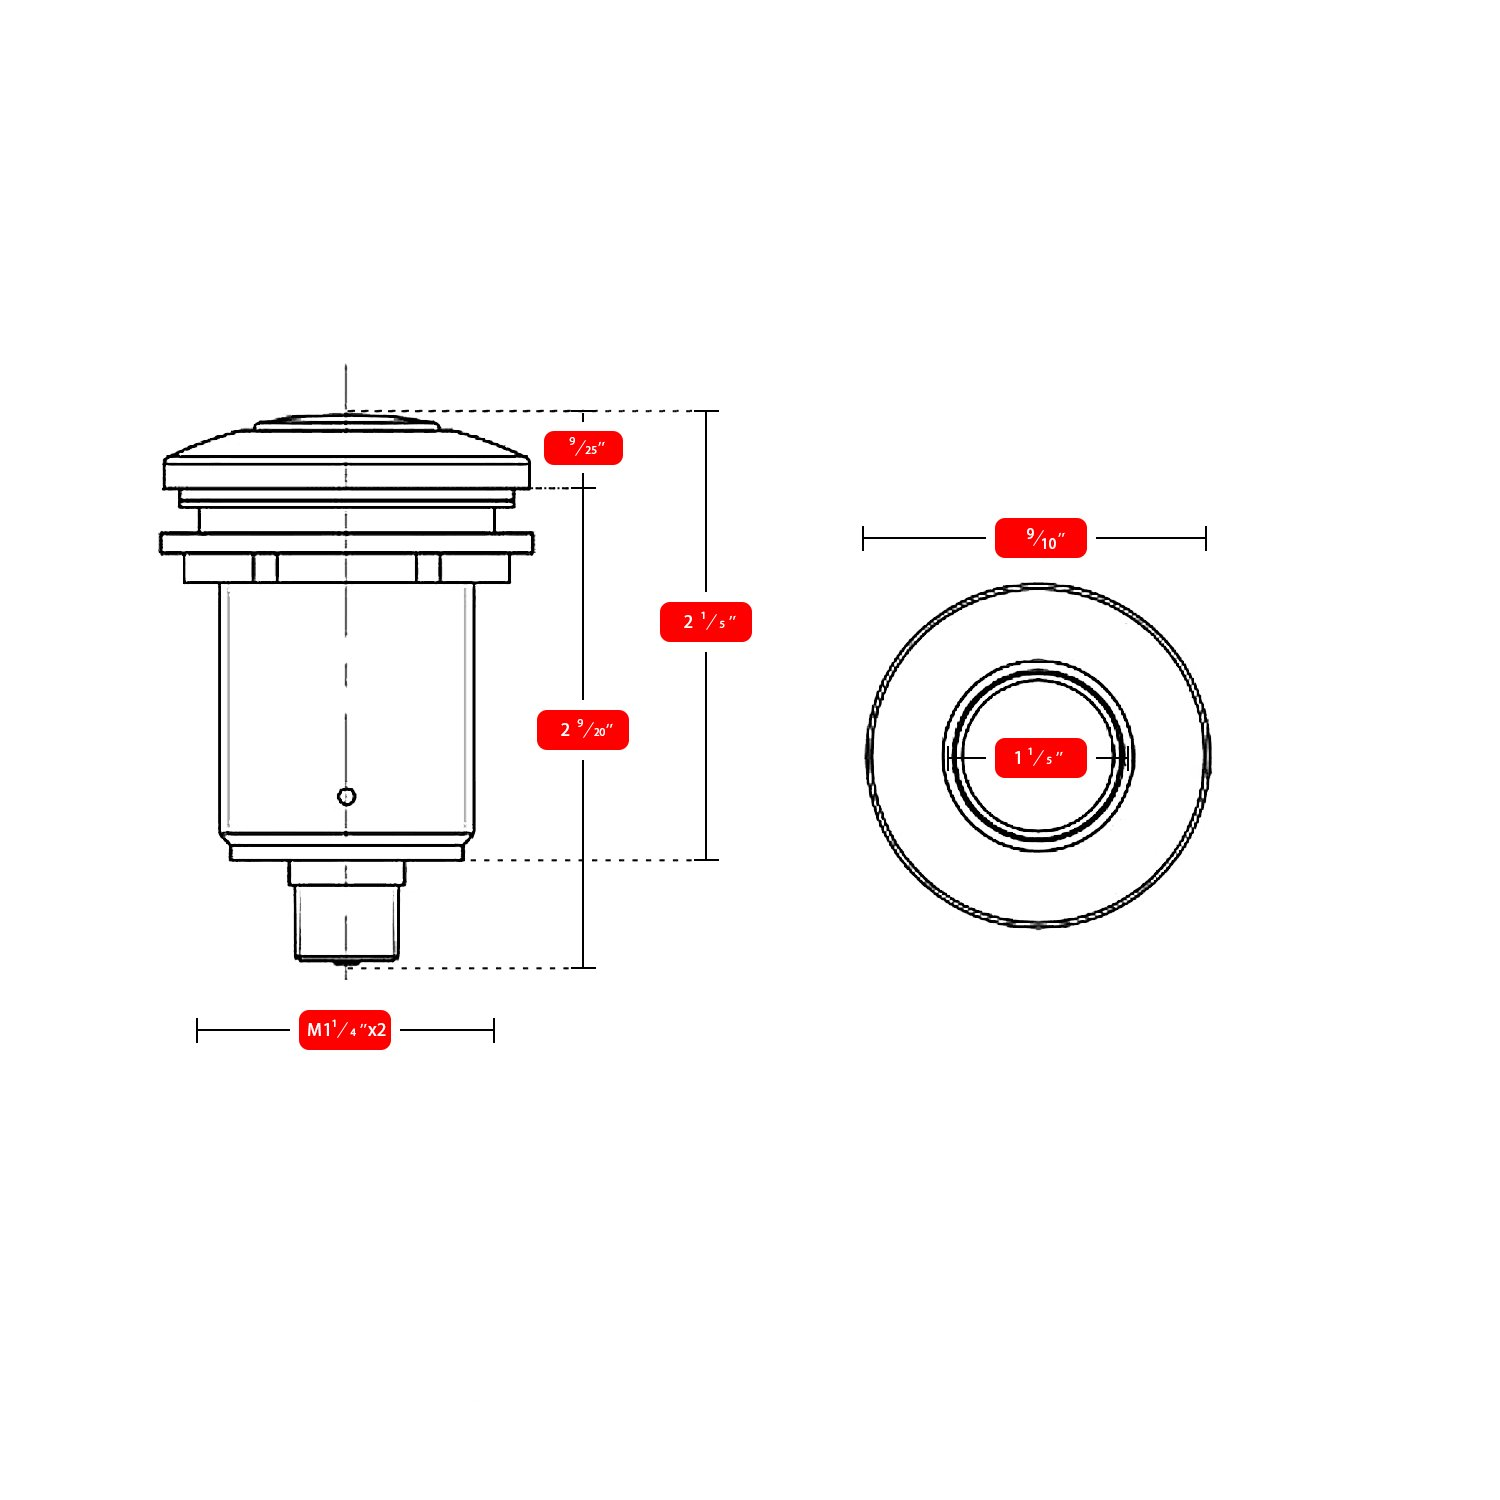 Air Activated Switch Button with Air Hose, Sink Garbage Disposal Parts (BRUSHED STAINLESS STEEL) by CLEESINK (Image #4)